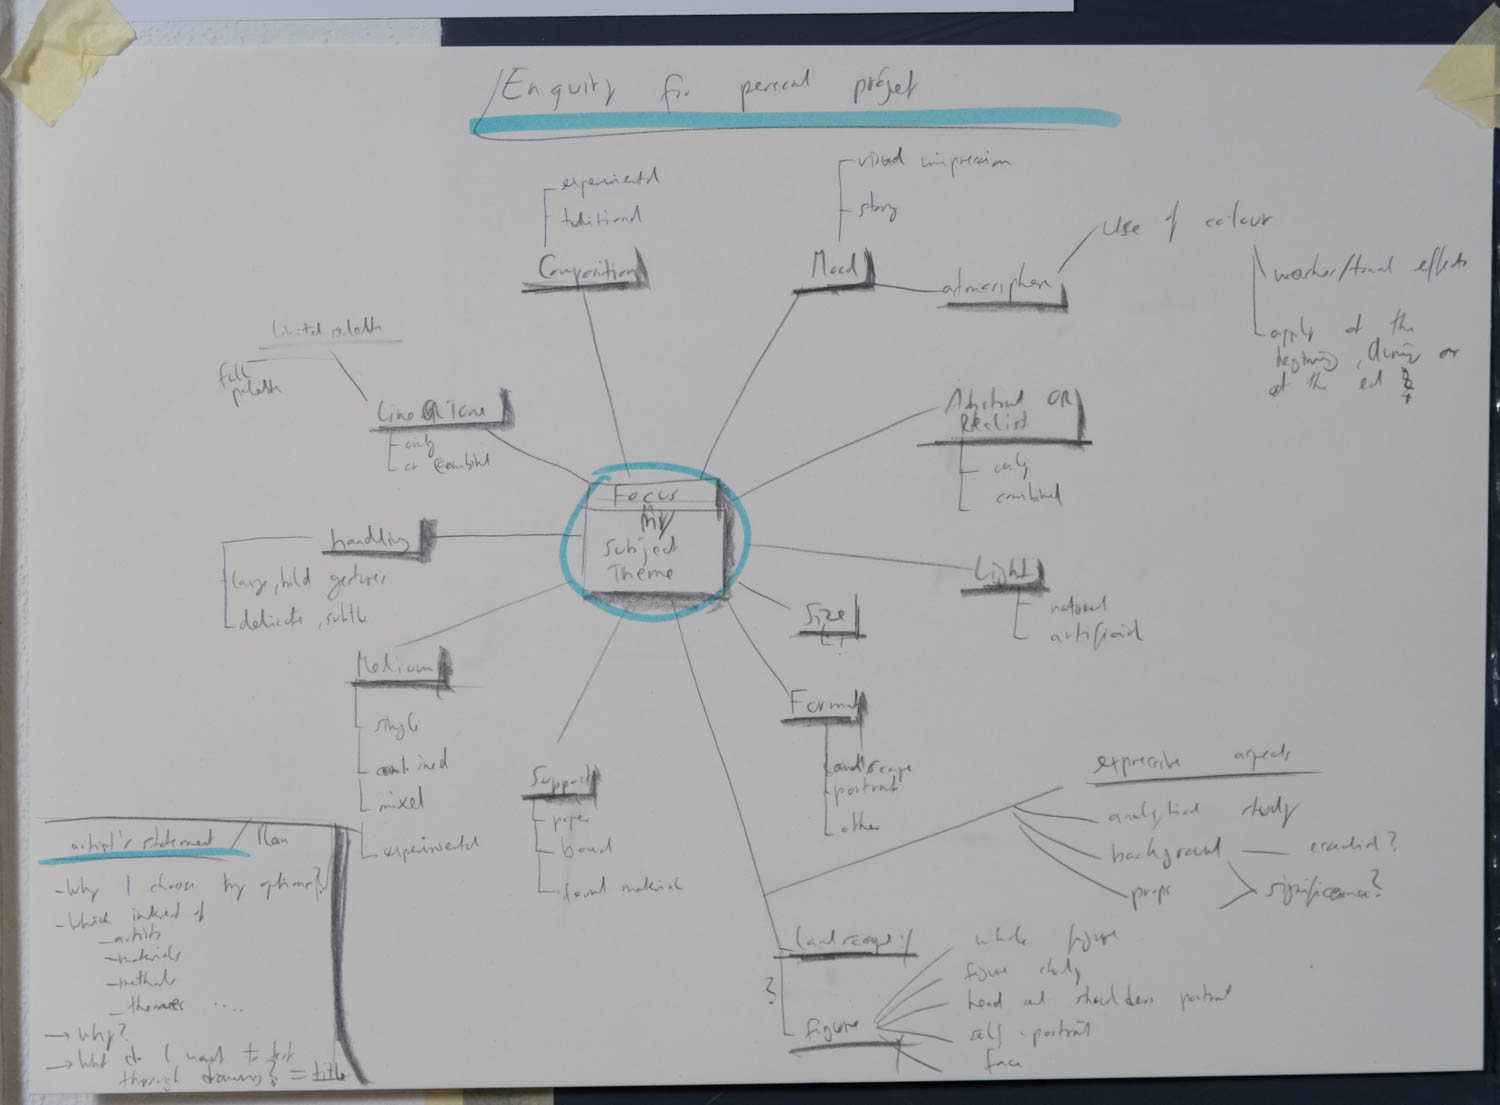 Enquiry map to answer during my project